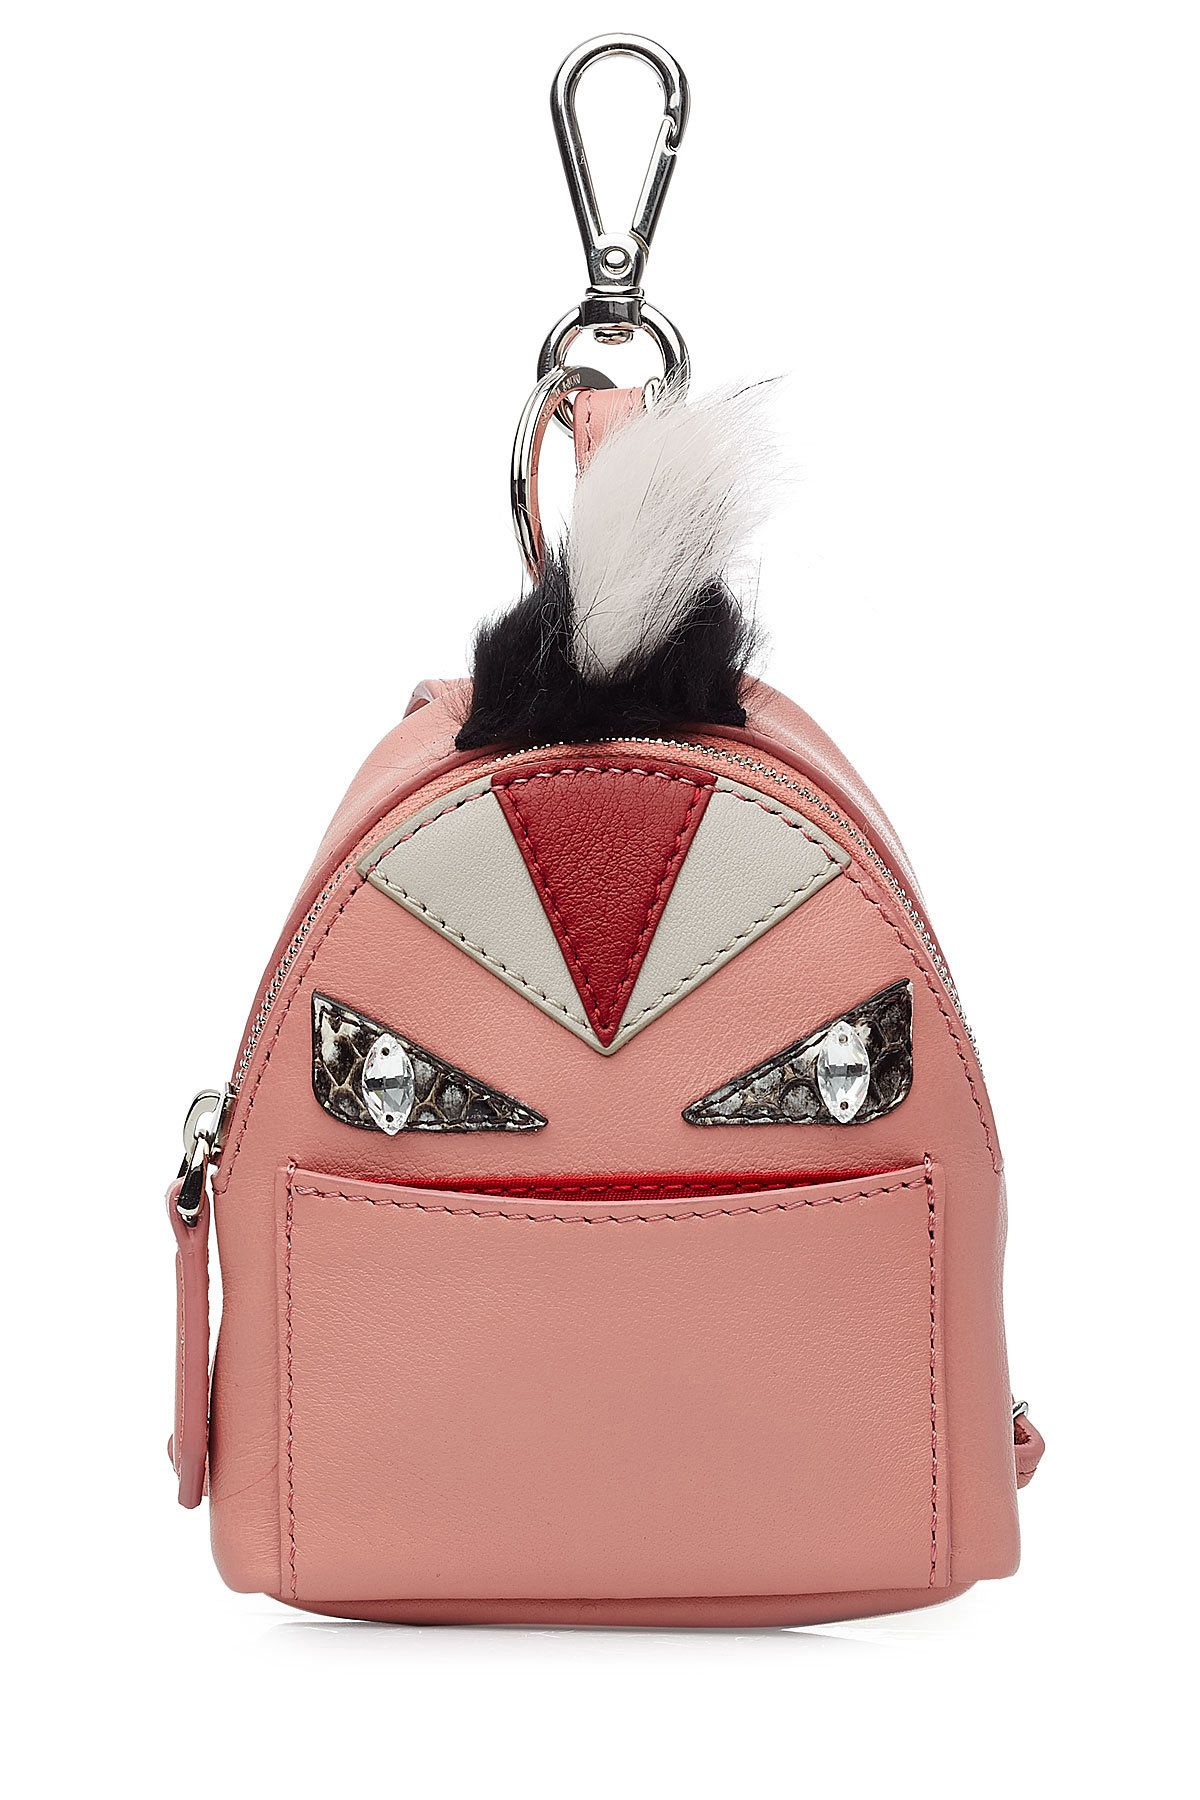 fb4dbc98 Fendi Leather Backpack Charm with Fox Fur | Designer (Latest) in ...